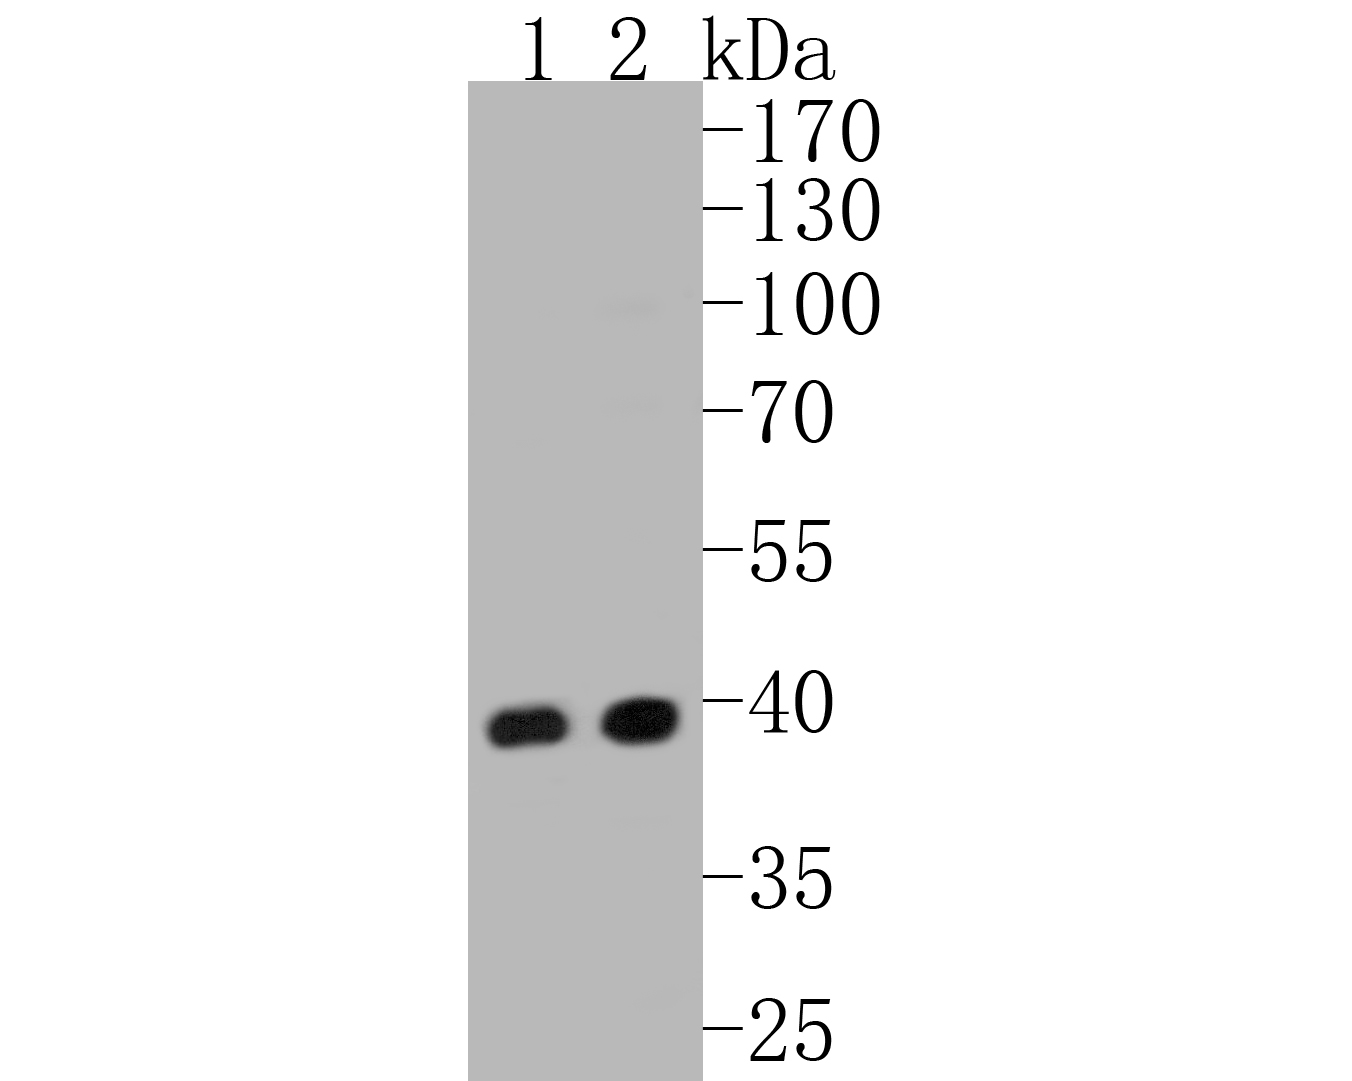 Western blot analysis of ERK2 on different lysates. Proteins were transferred to a PVDF membrane and blocked with 5% BSA in PBS for 1 hour at room temperature. The primary antibody (ET1603-23, 1/500) was used in 5% BSA at room temperature for 2 hours. Goat Anti-Rabbit IgG - HRP Secondary Antibody (HA1001) at 1:5,000 dilution was used for 1 hour at room temperature.<br /> Positive control: <br /> Lane 1: PC-12 cell lysate<br /> Lane 2: Hela cell lysate